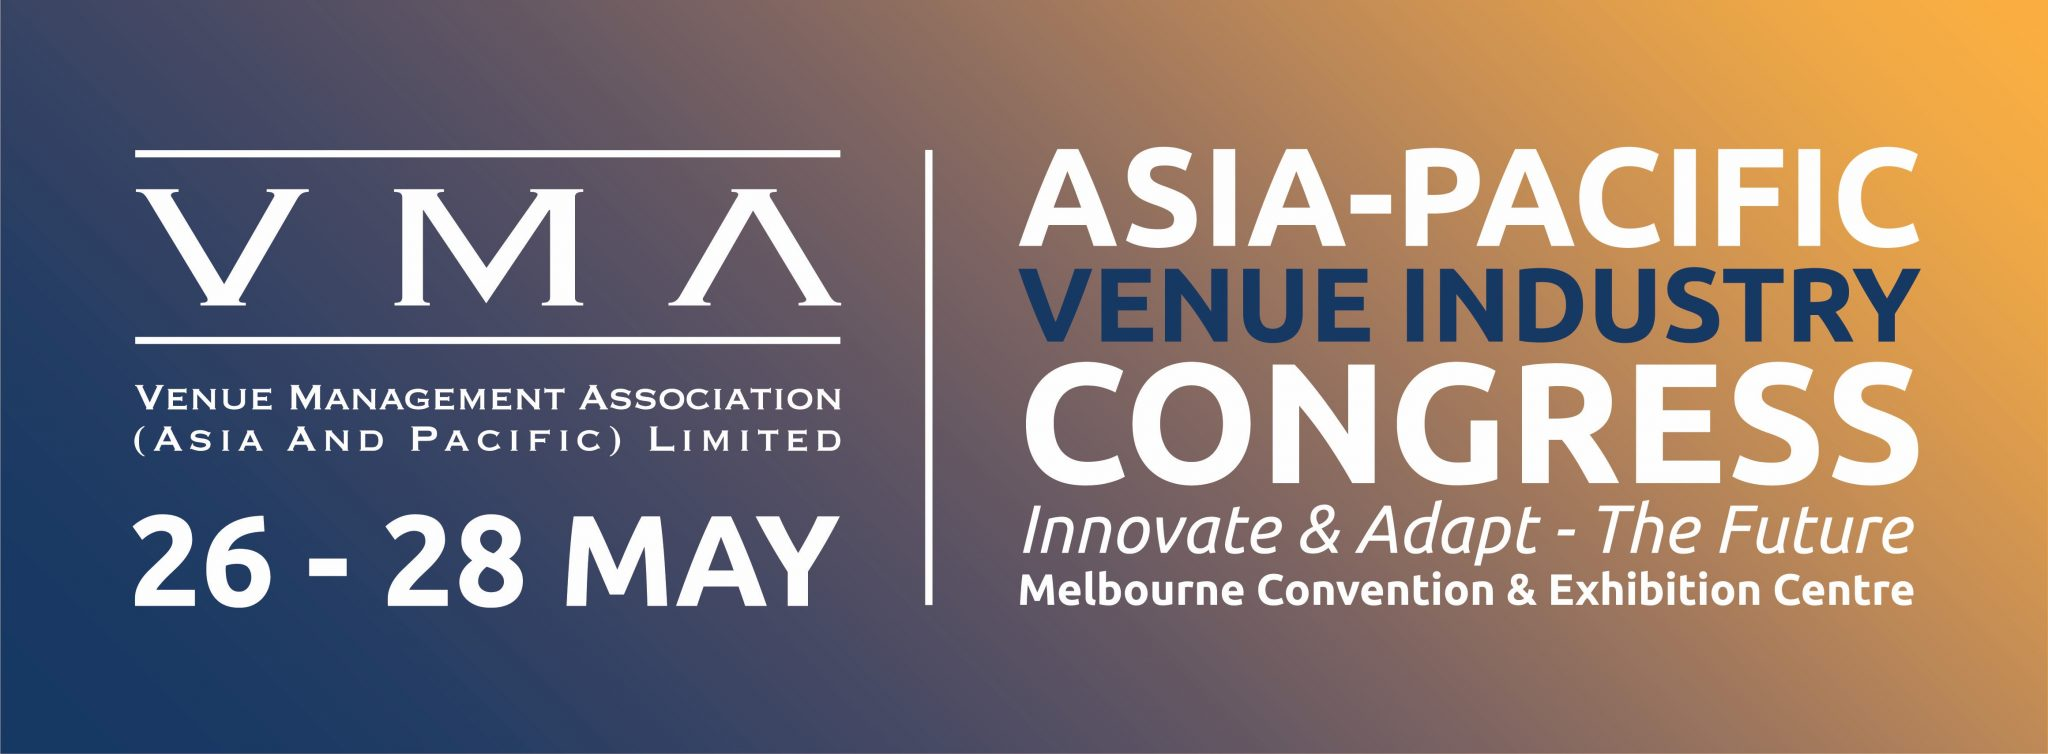 Asia-Pacific Venue Industry Congress @ Melbourne Convention & Exhibition Centre